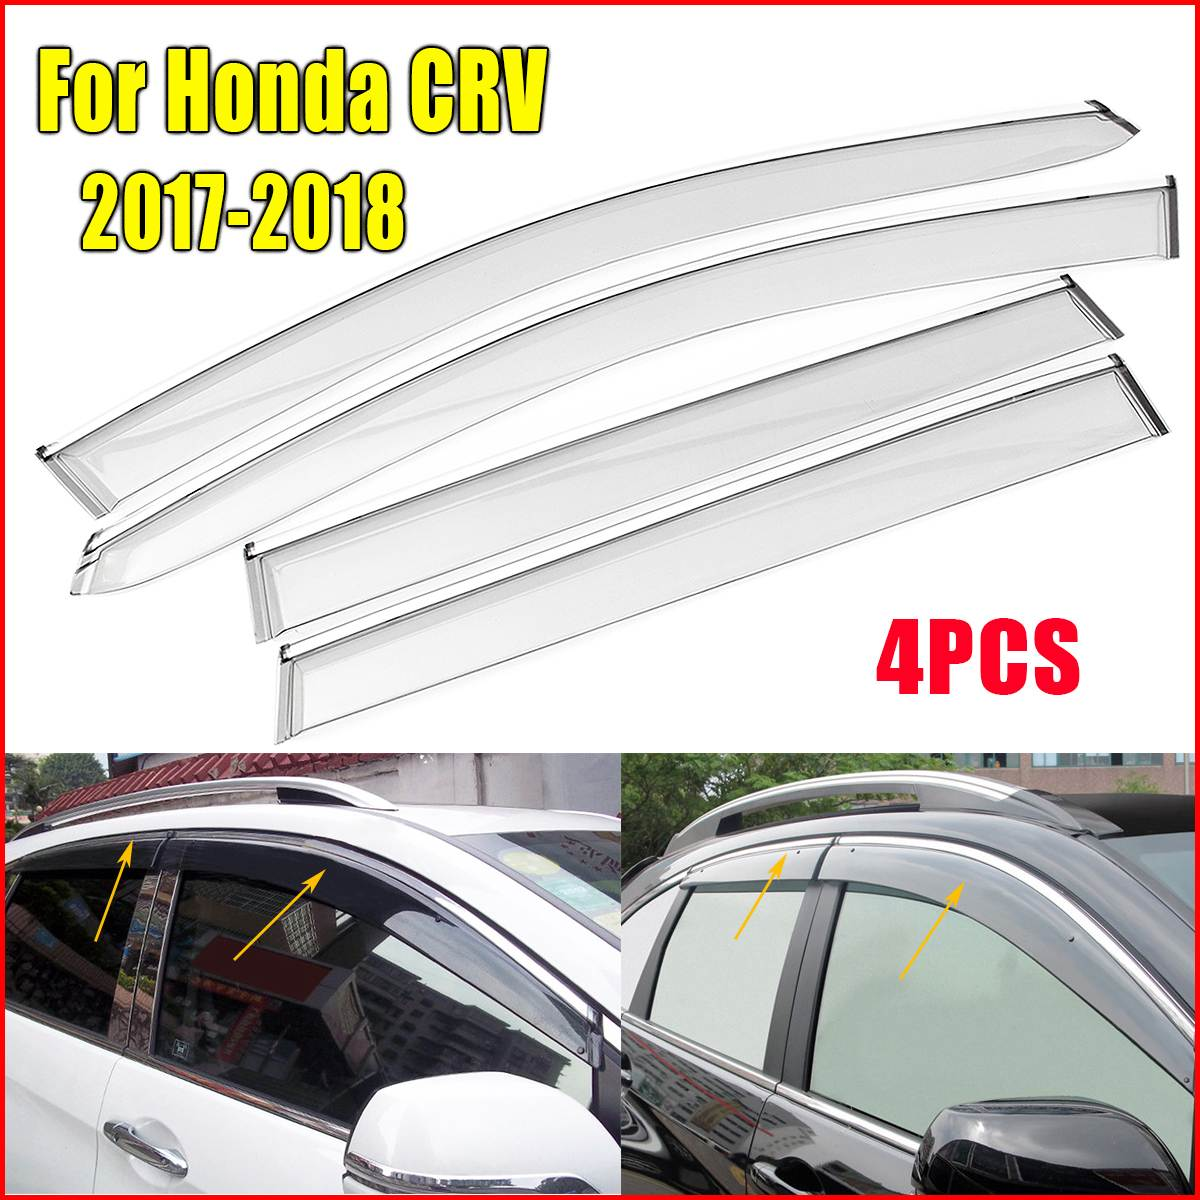 4pcs plastic window visor vent shades rain guard for honda crv cr v